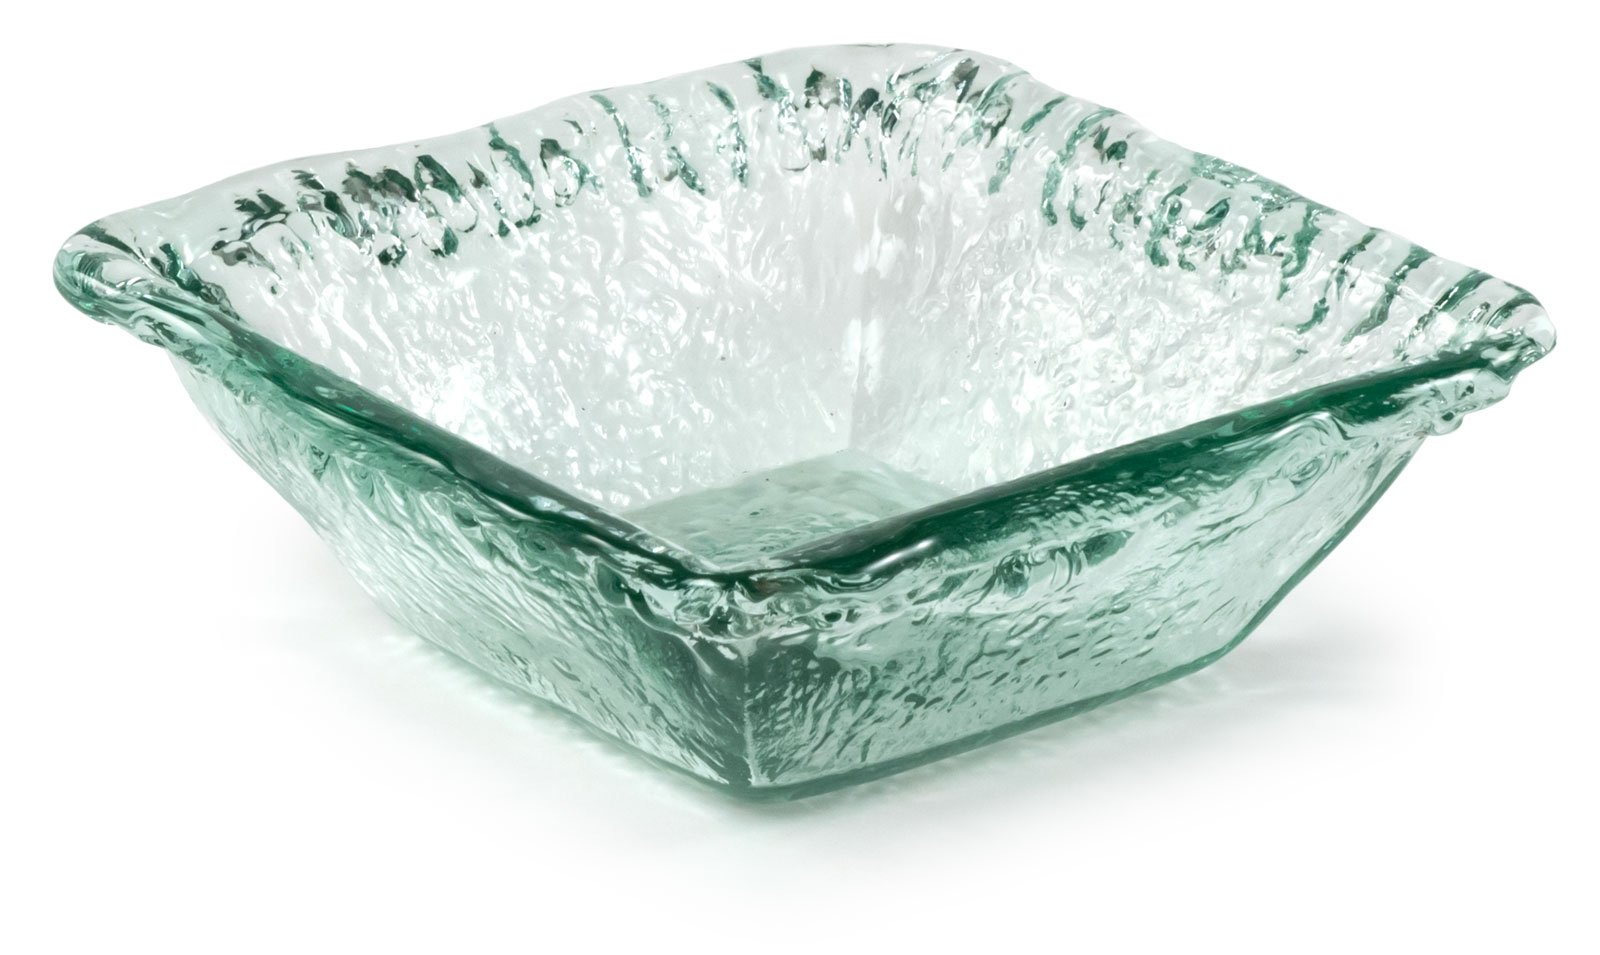 100% Recycled Glass Textured Sm Square Salad Bowl, Set of 2 - 6.5''Lx6.5''Wx2.25''H